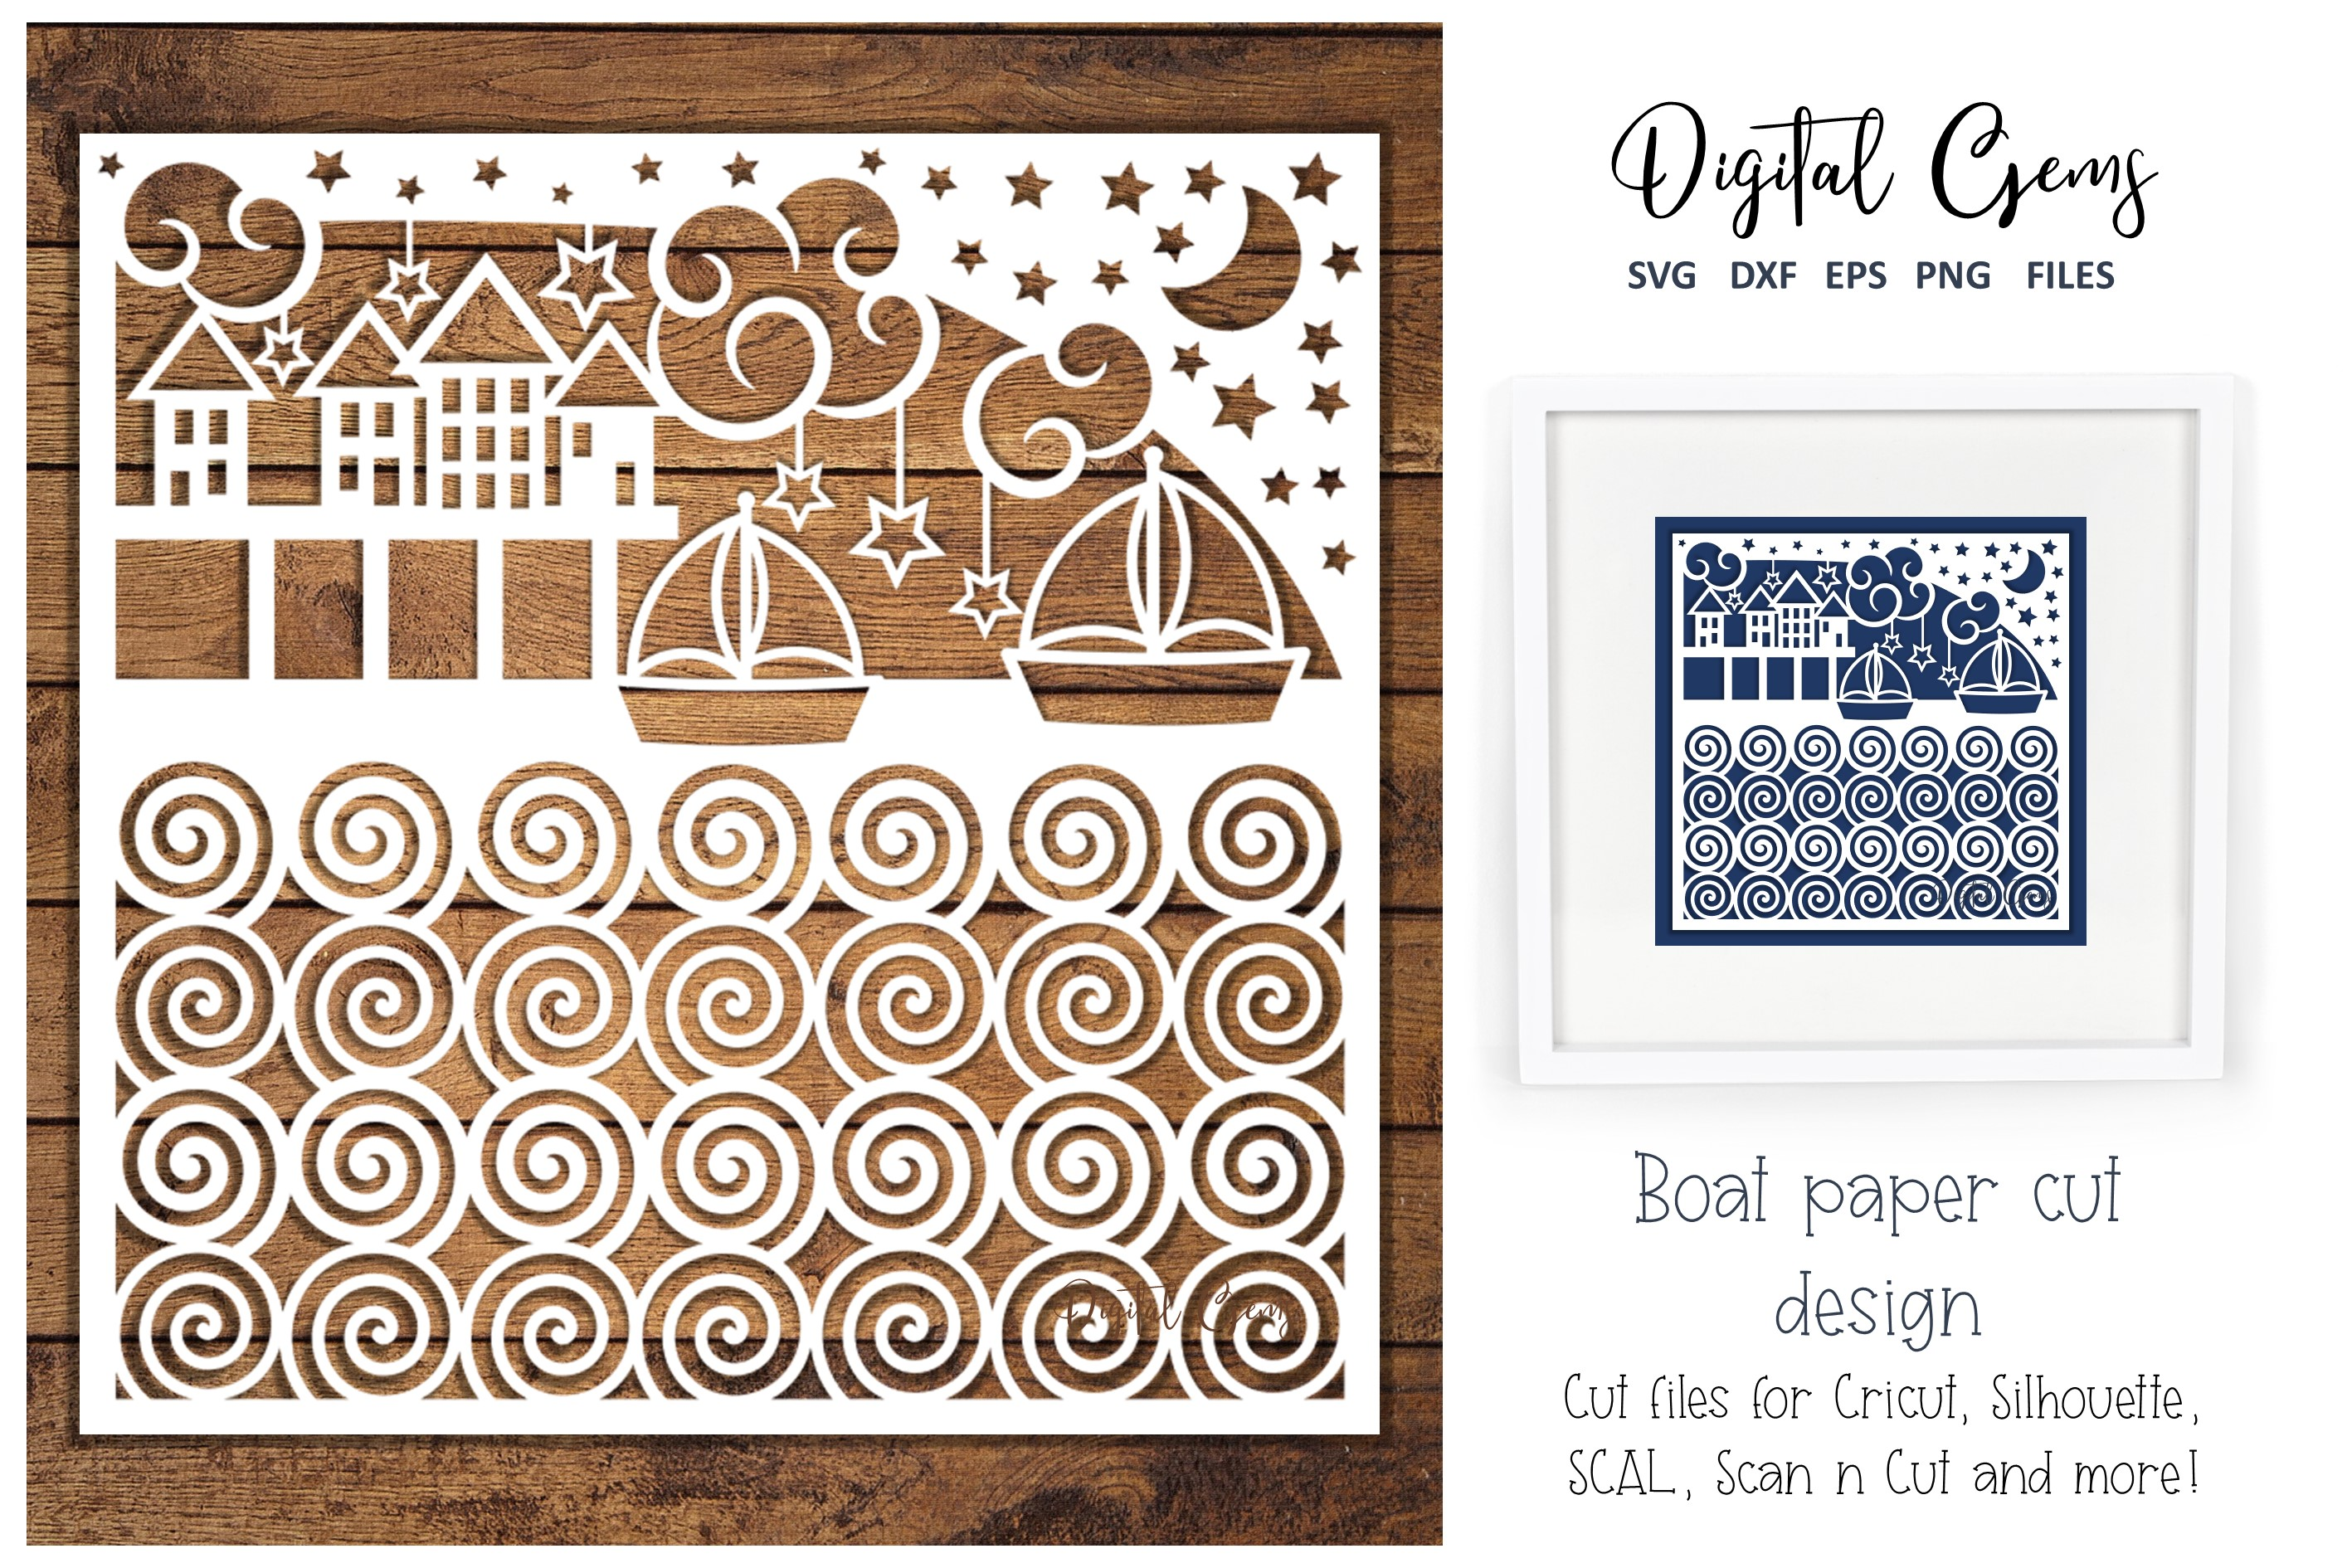 Download Free Sea Scene Boat Paper Cut Design Graphic By Digital Gems for Cricut Explore, Silhouette and other cutting machines.